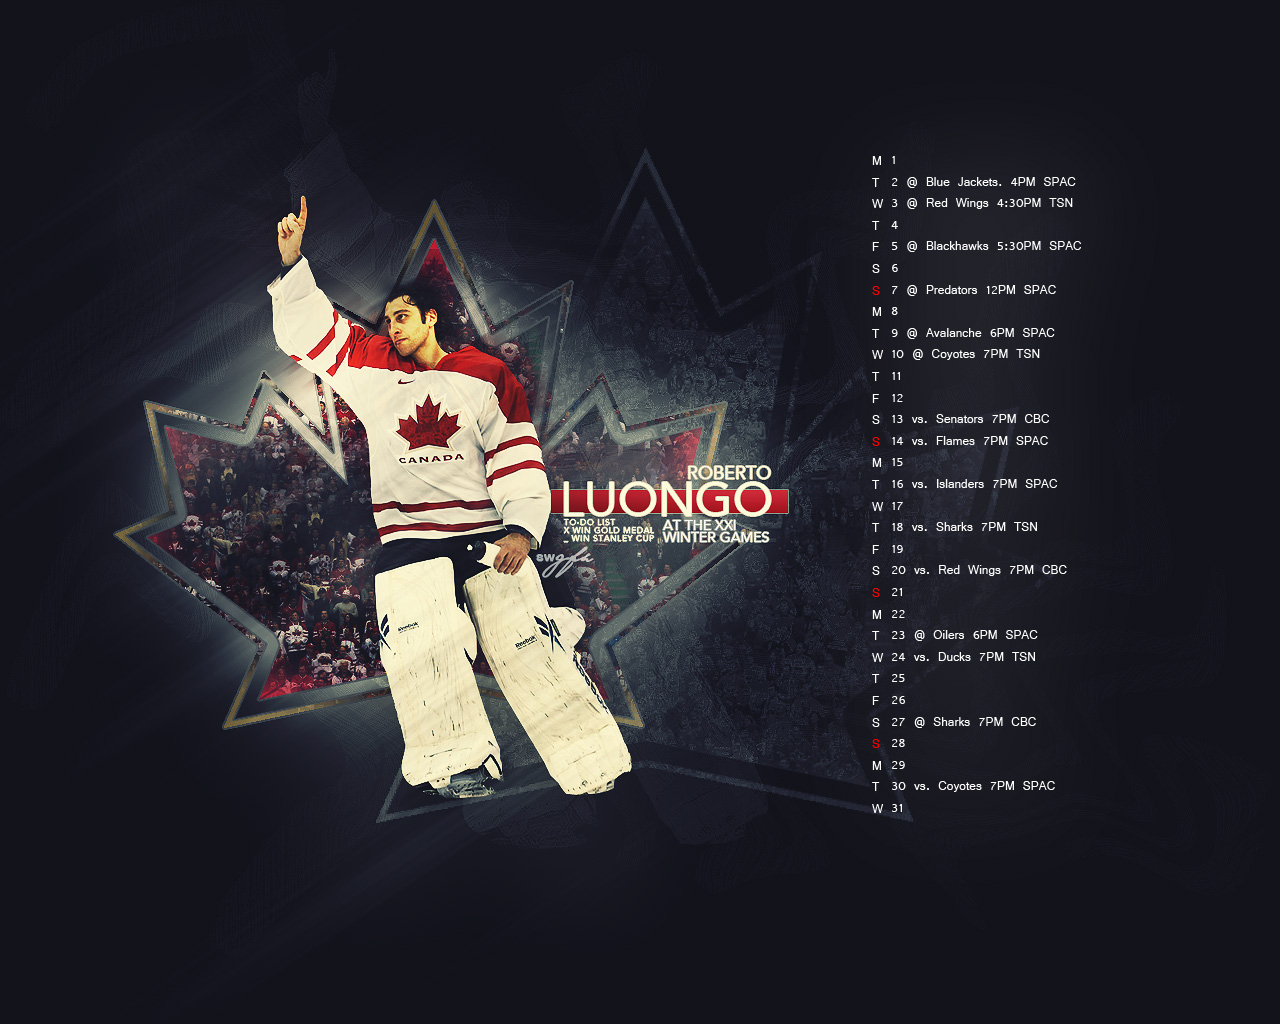 March 2010 Schedule ft. Luongo